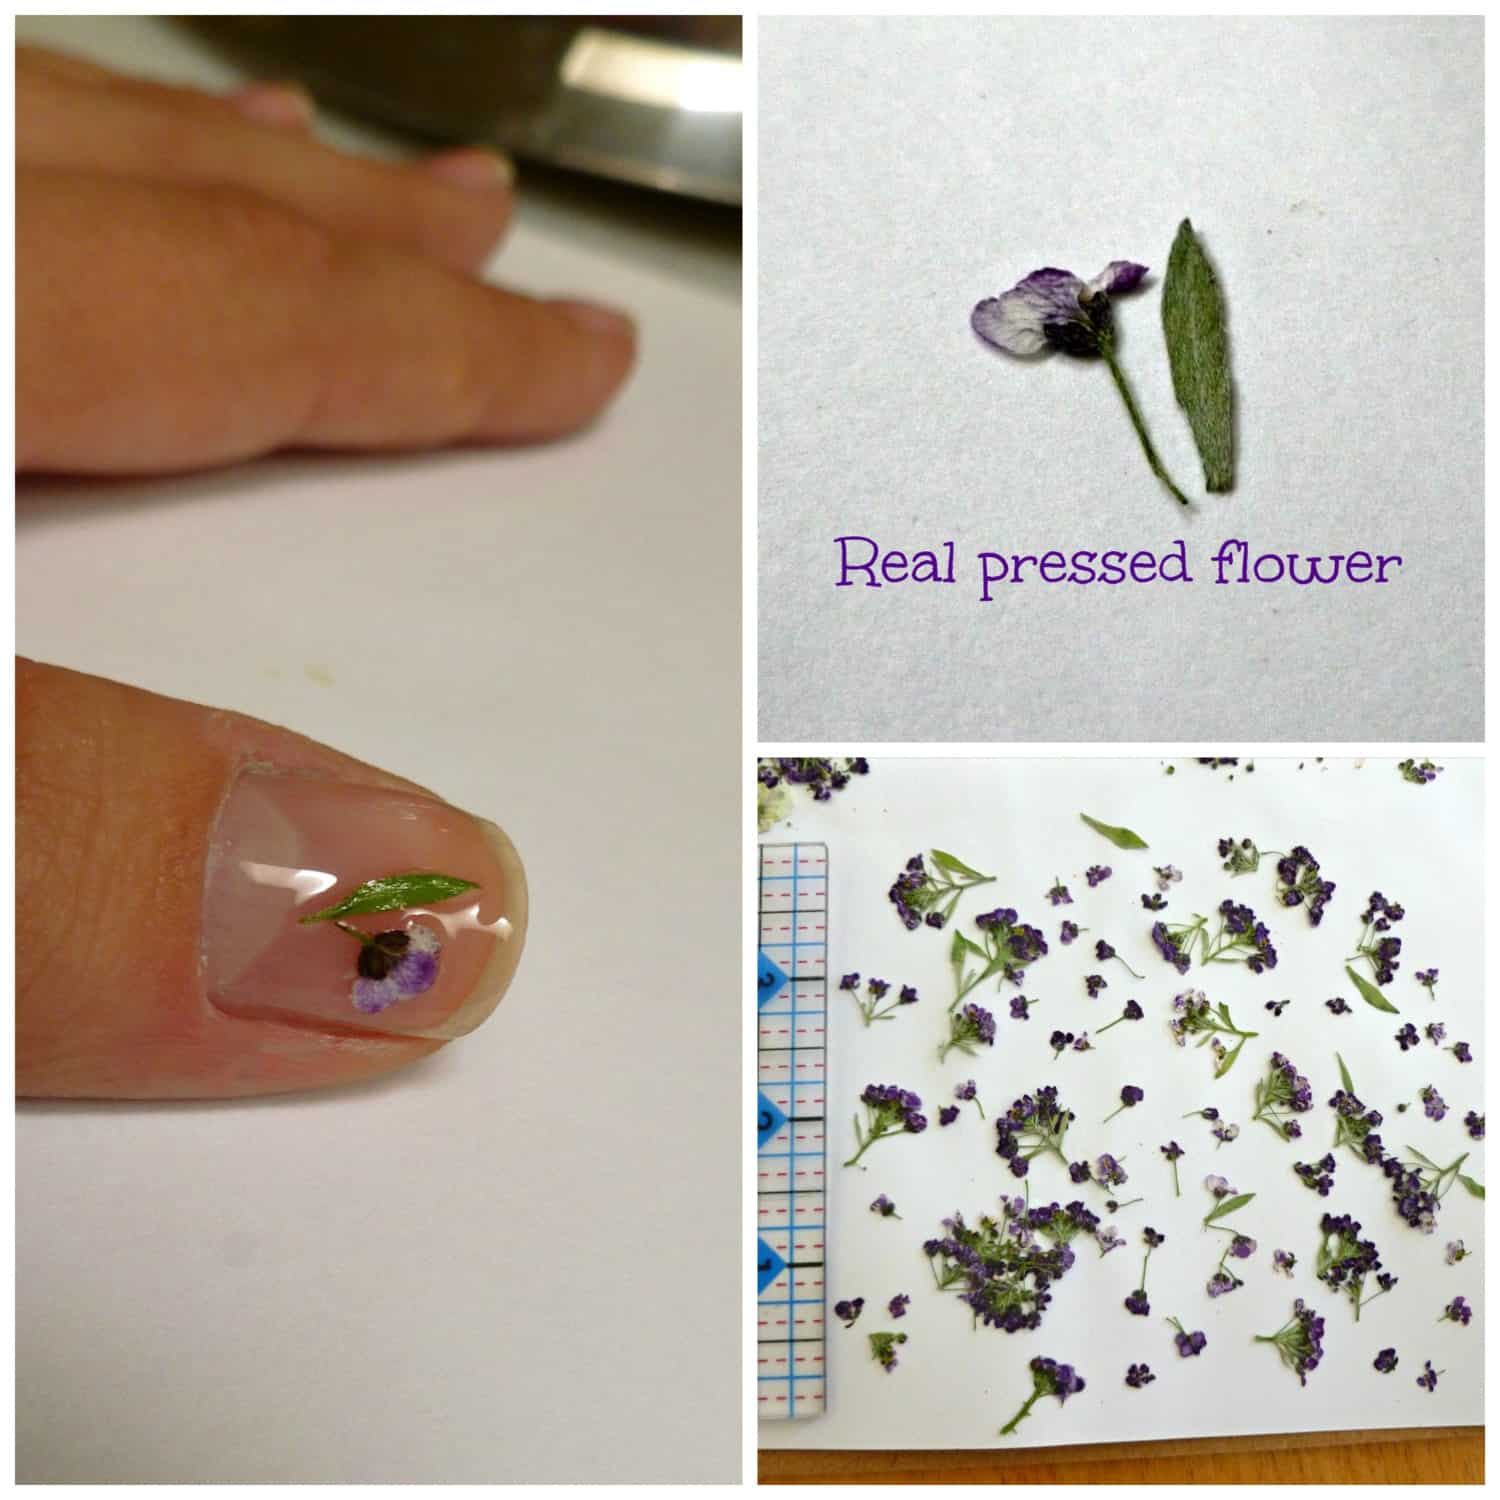 Tiny pressed flower manicure